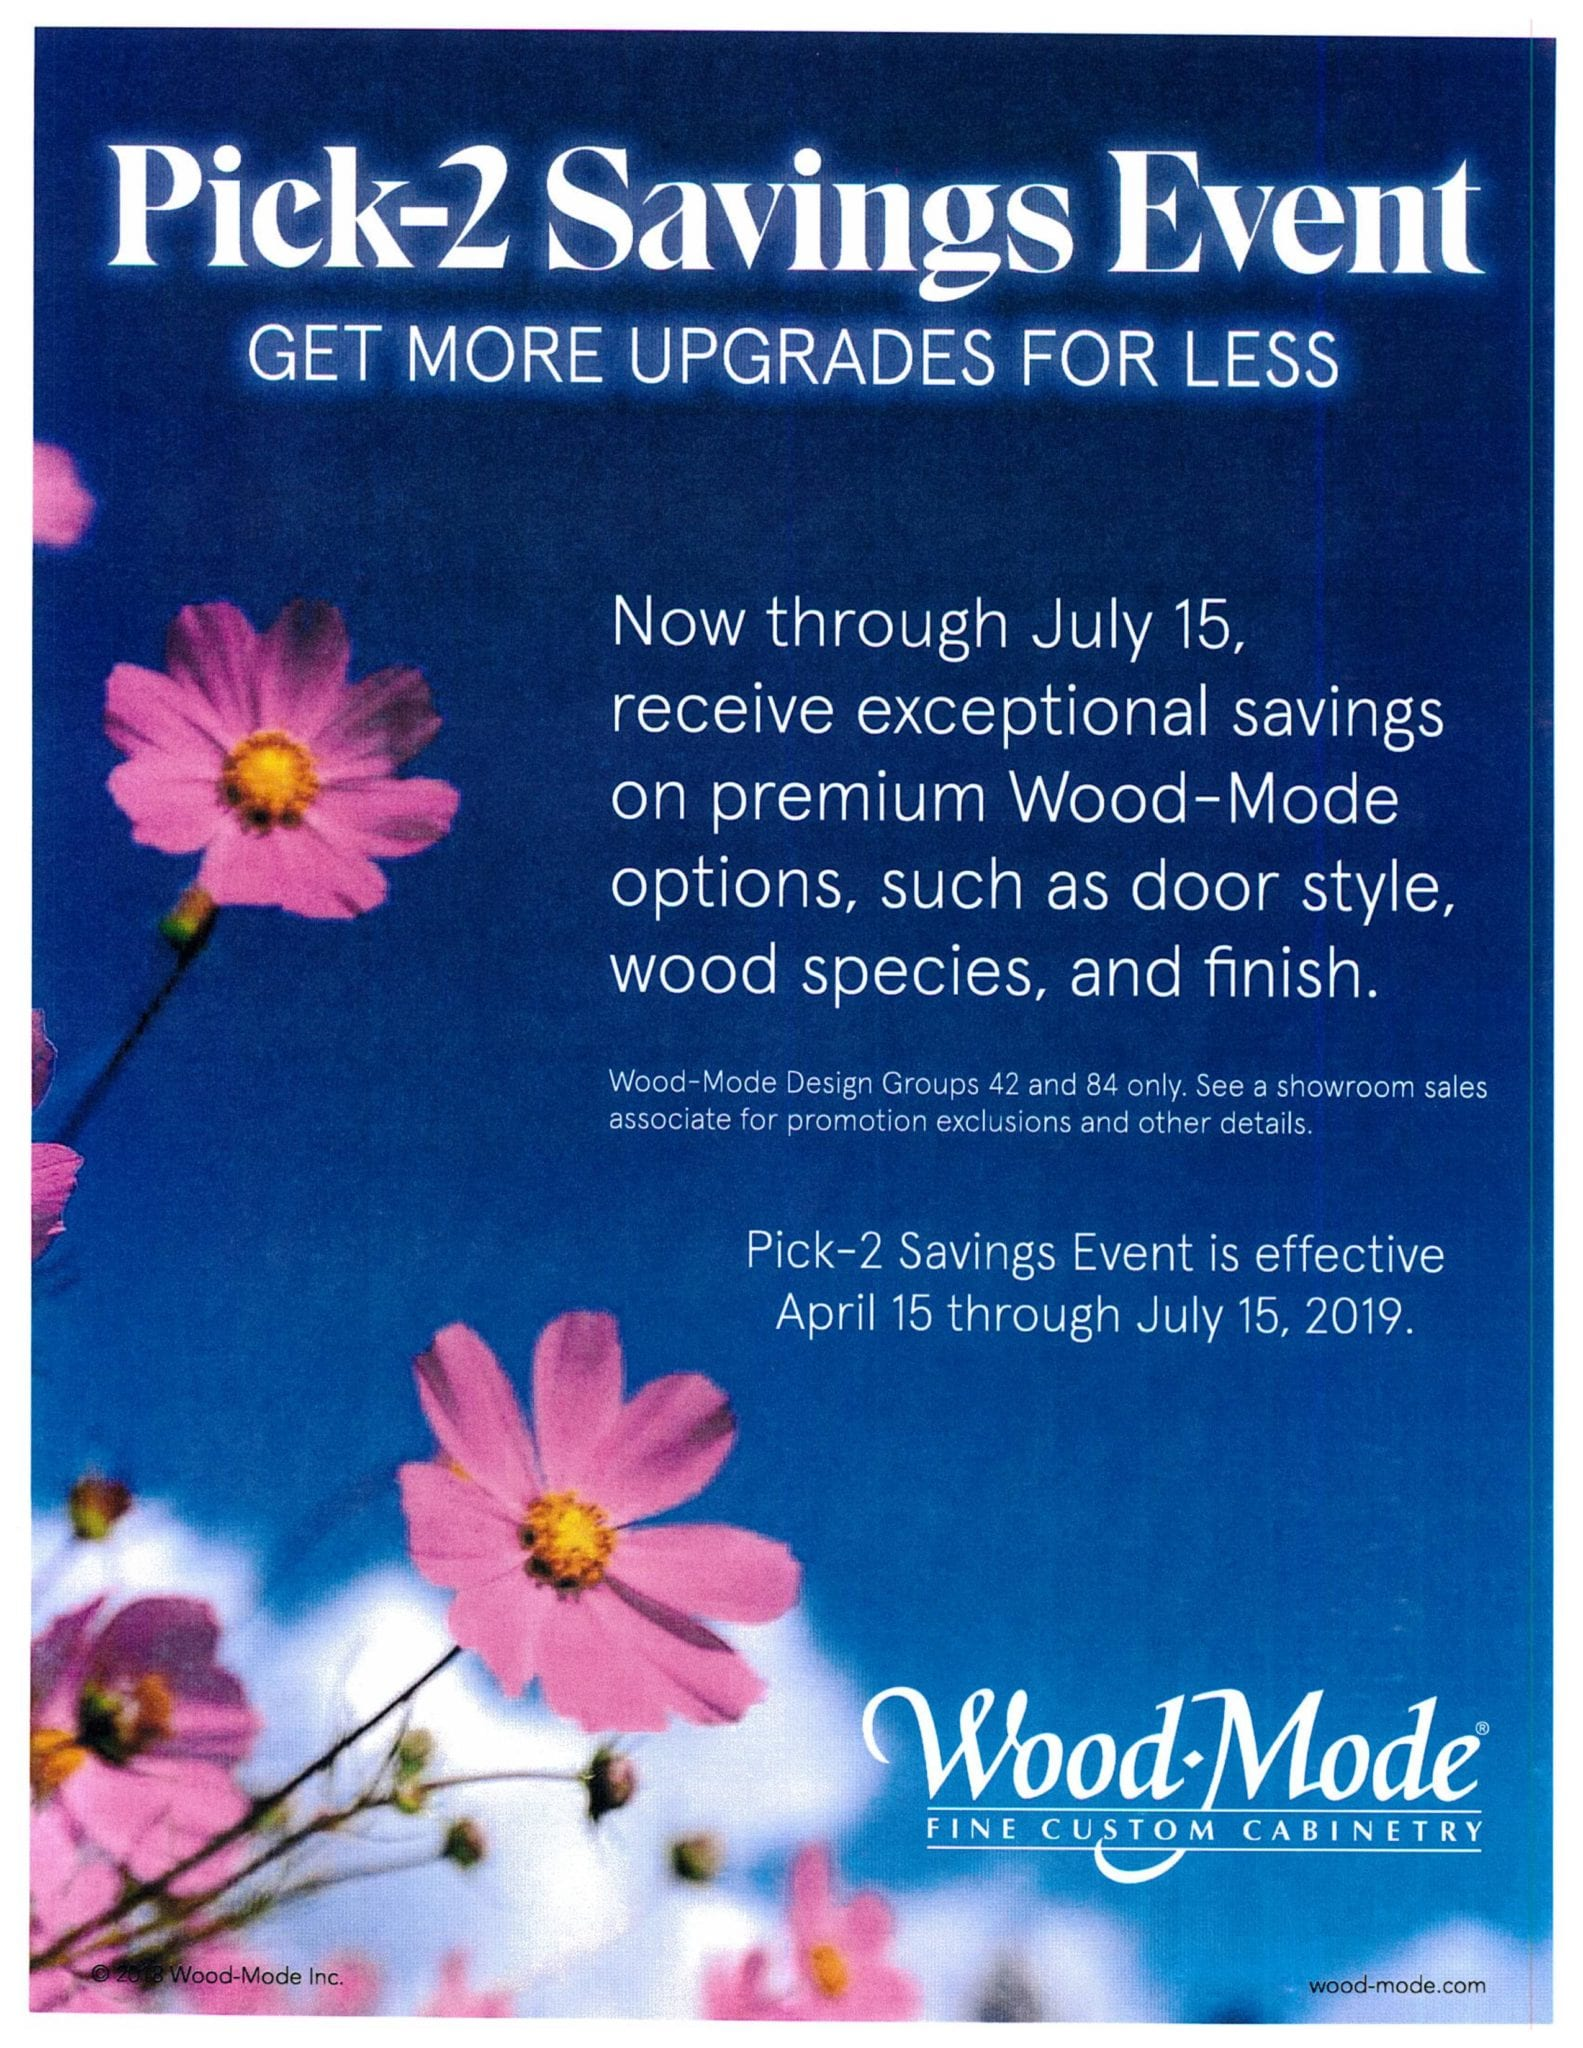 Wood-Mode Pick-2 Savings Event Hammond Lumber Company